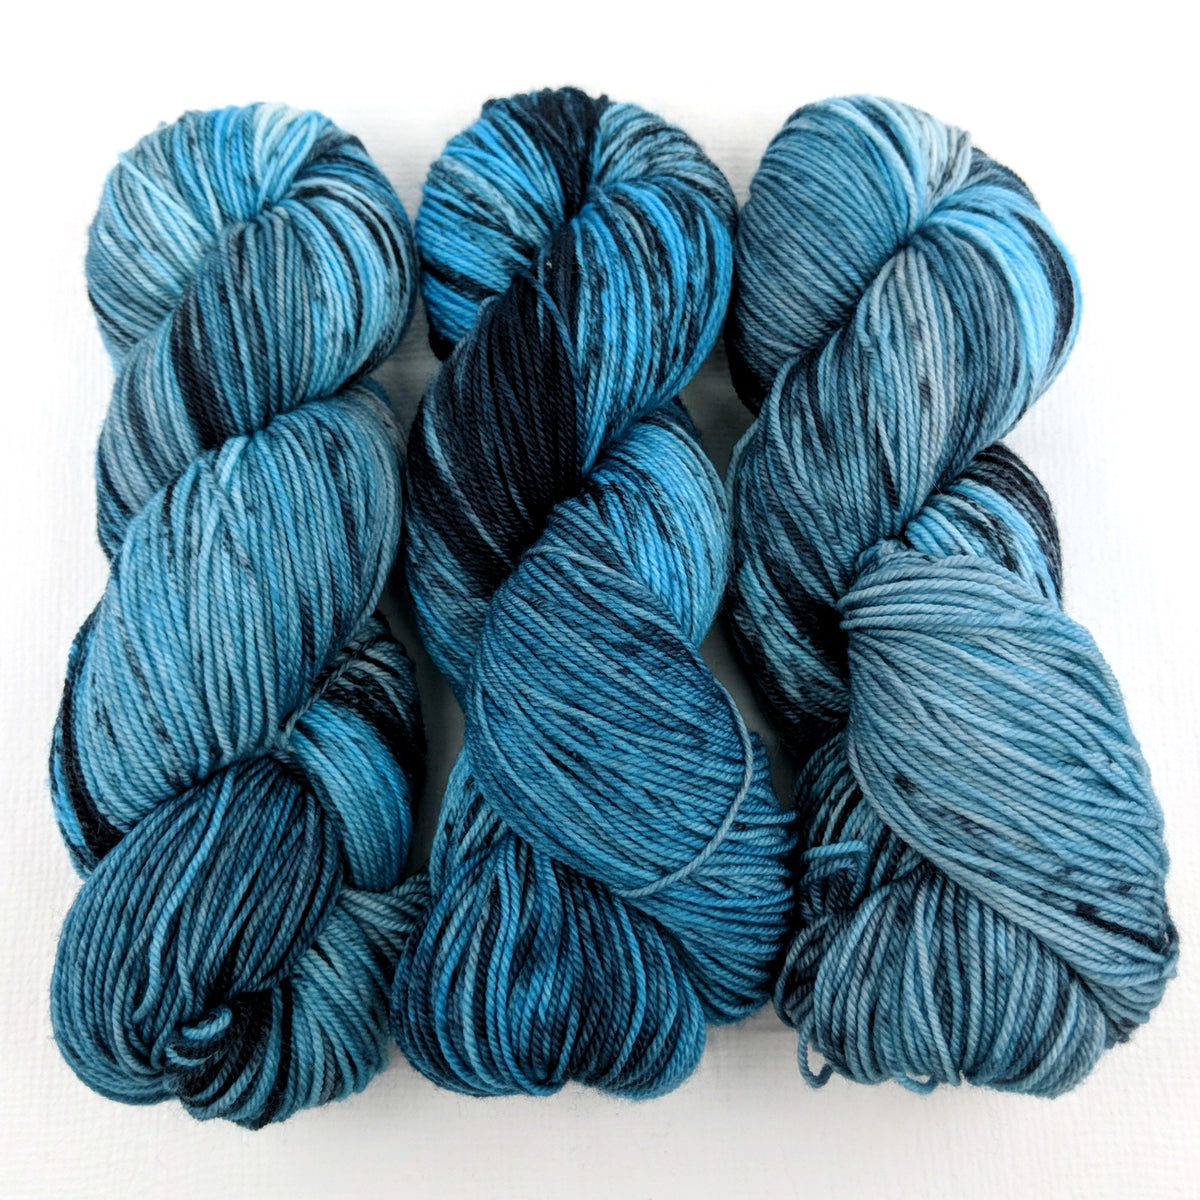 Chinook Arch - Bunny Hug Sport - Dyed Stock